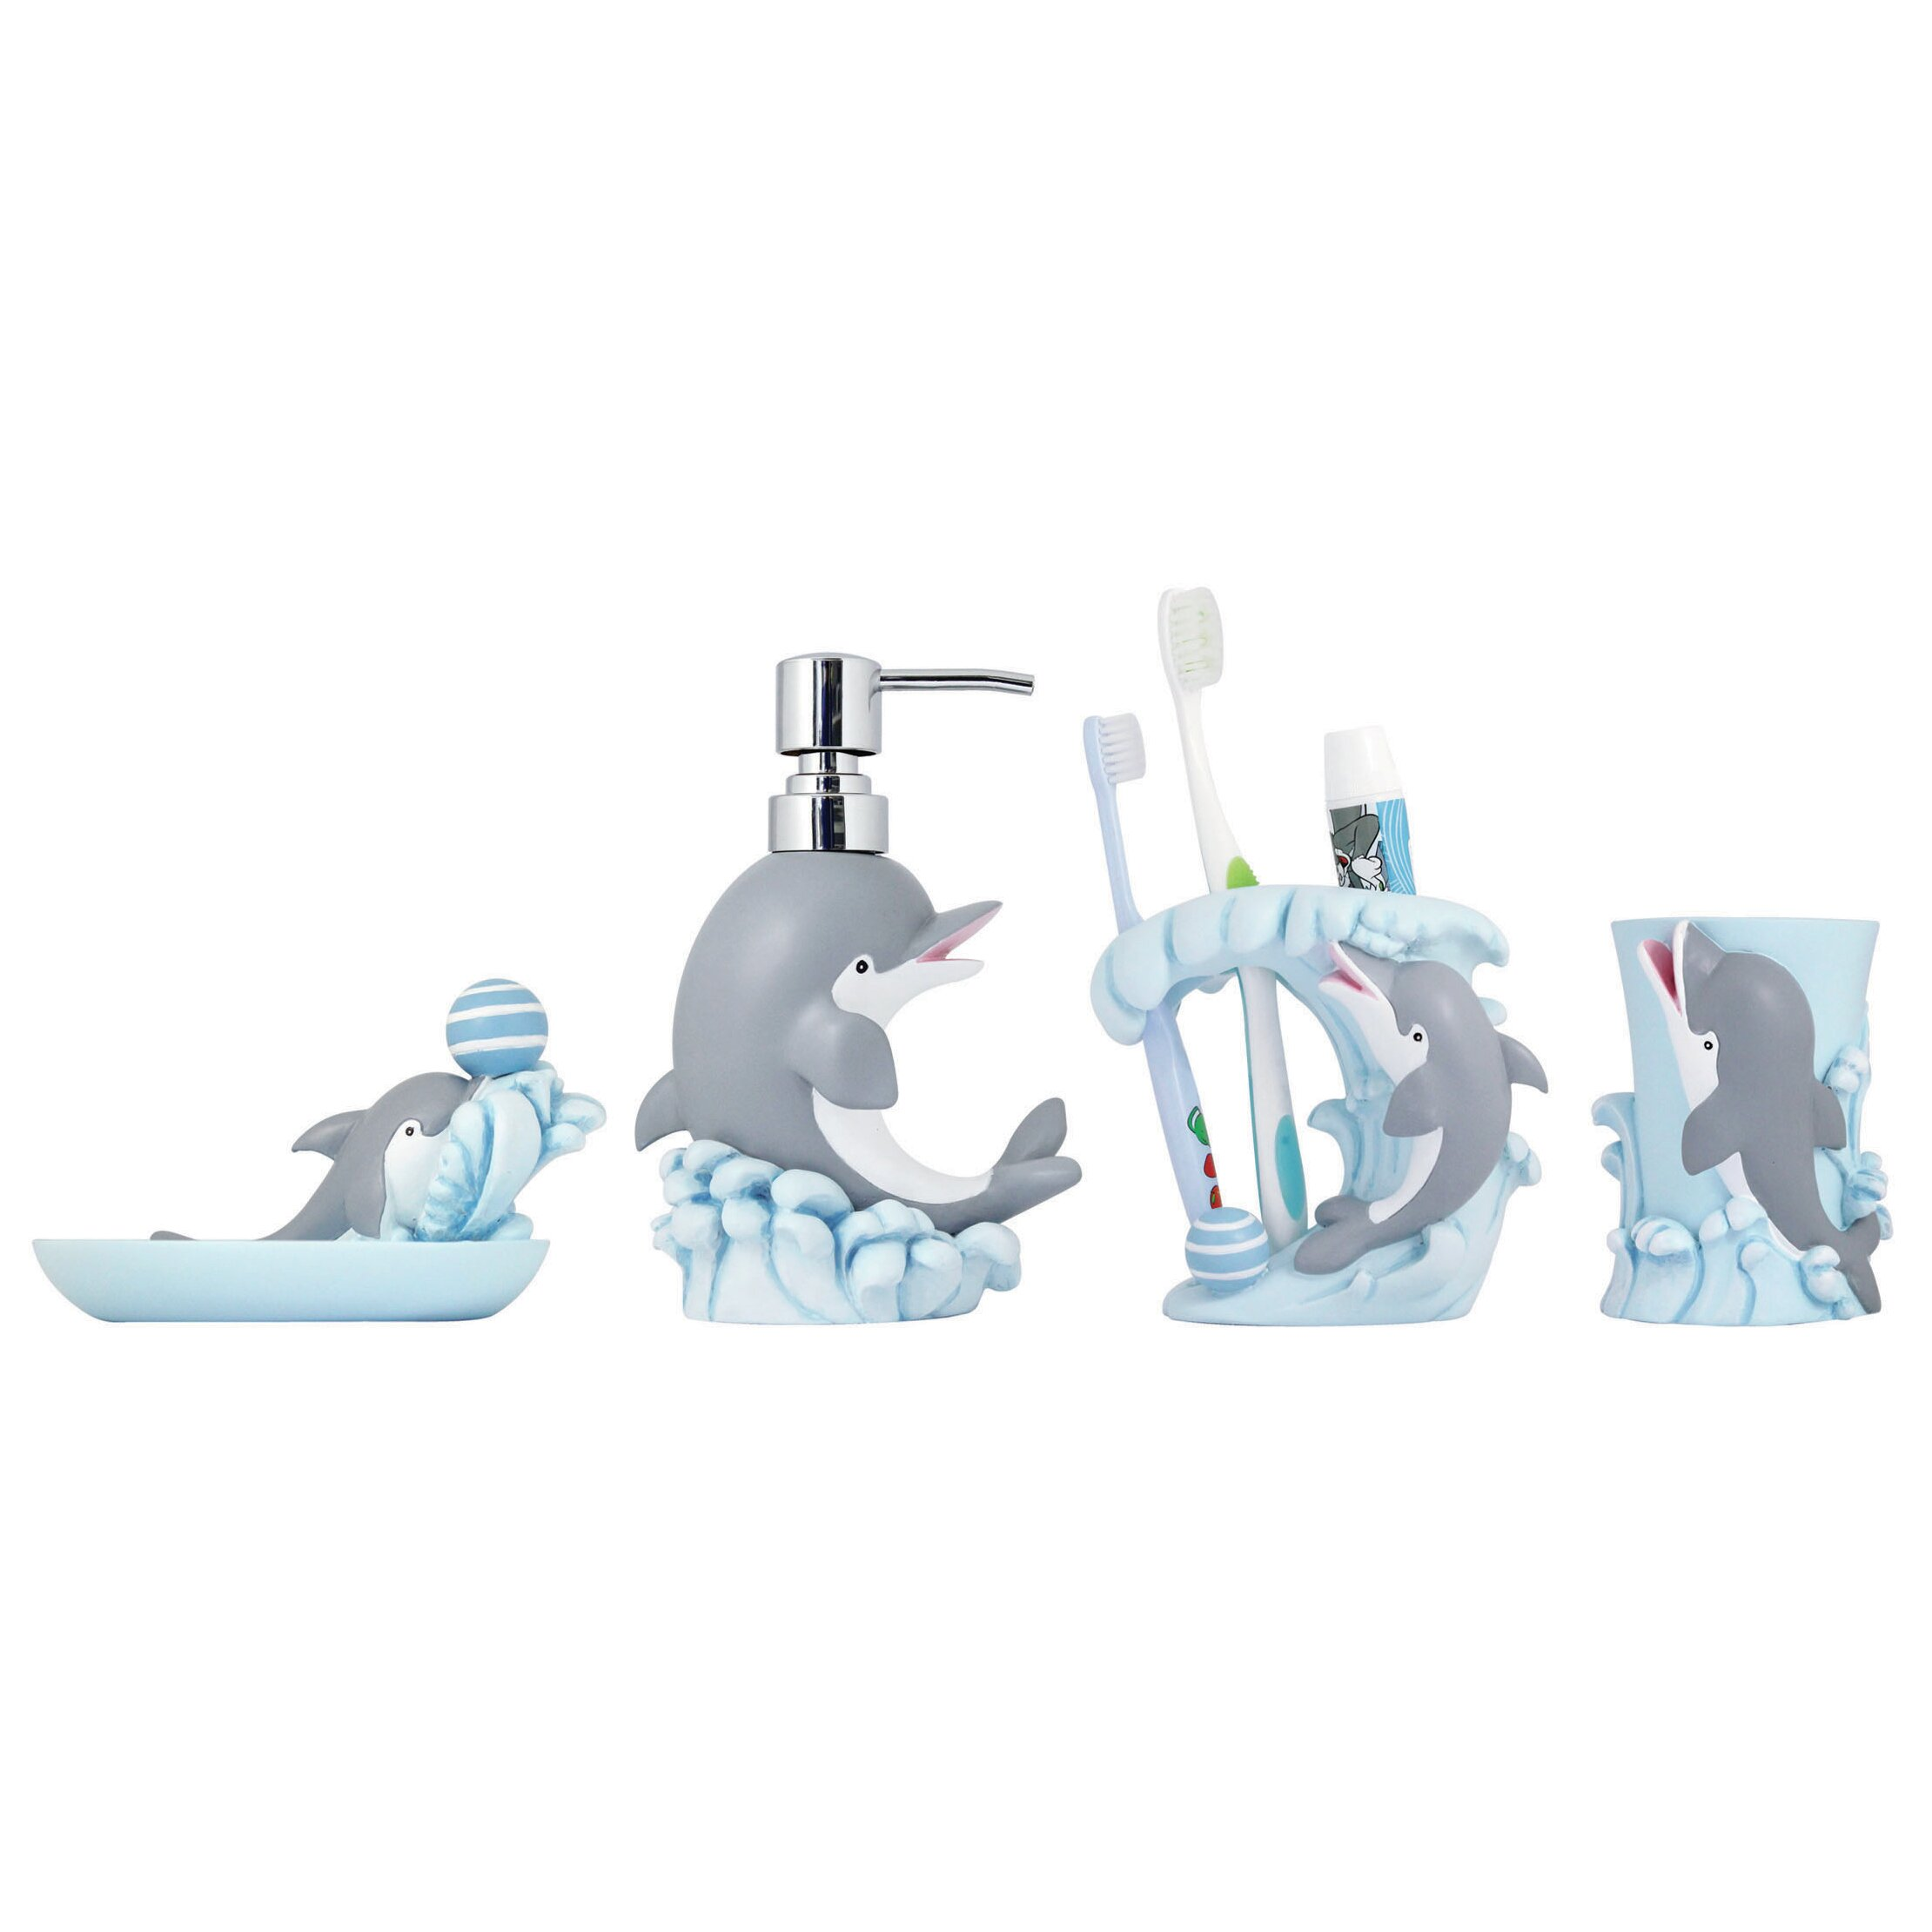 Modona 4 Piece Kids Bathroom Accessories Set